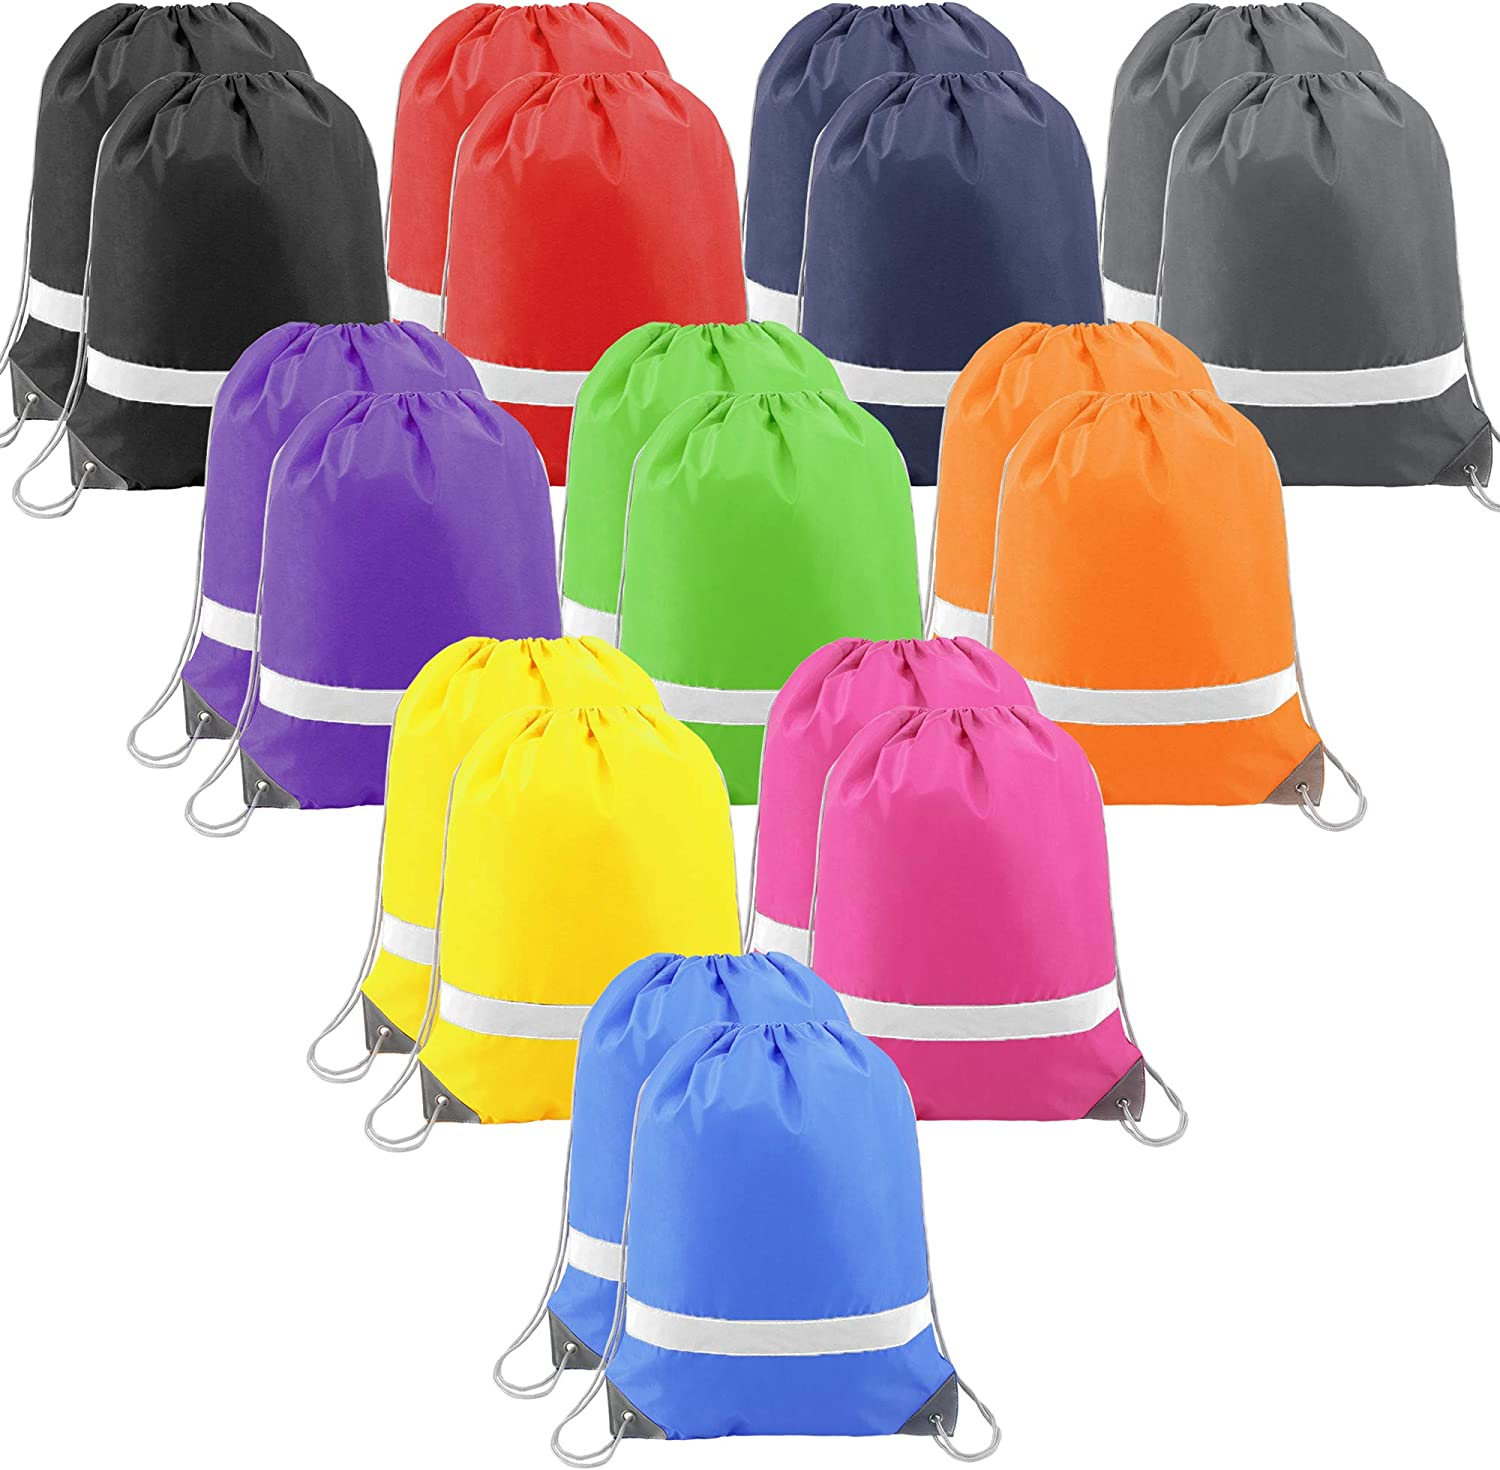 20 Pieces Reflective Drawstring Backpack Bags Gym Sports String Bags Cinch Bags